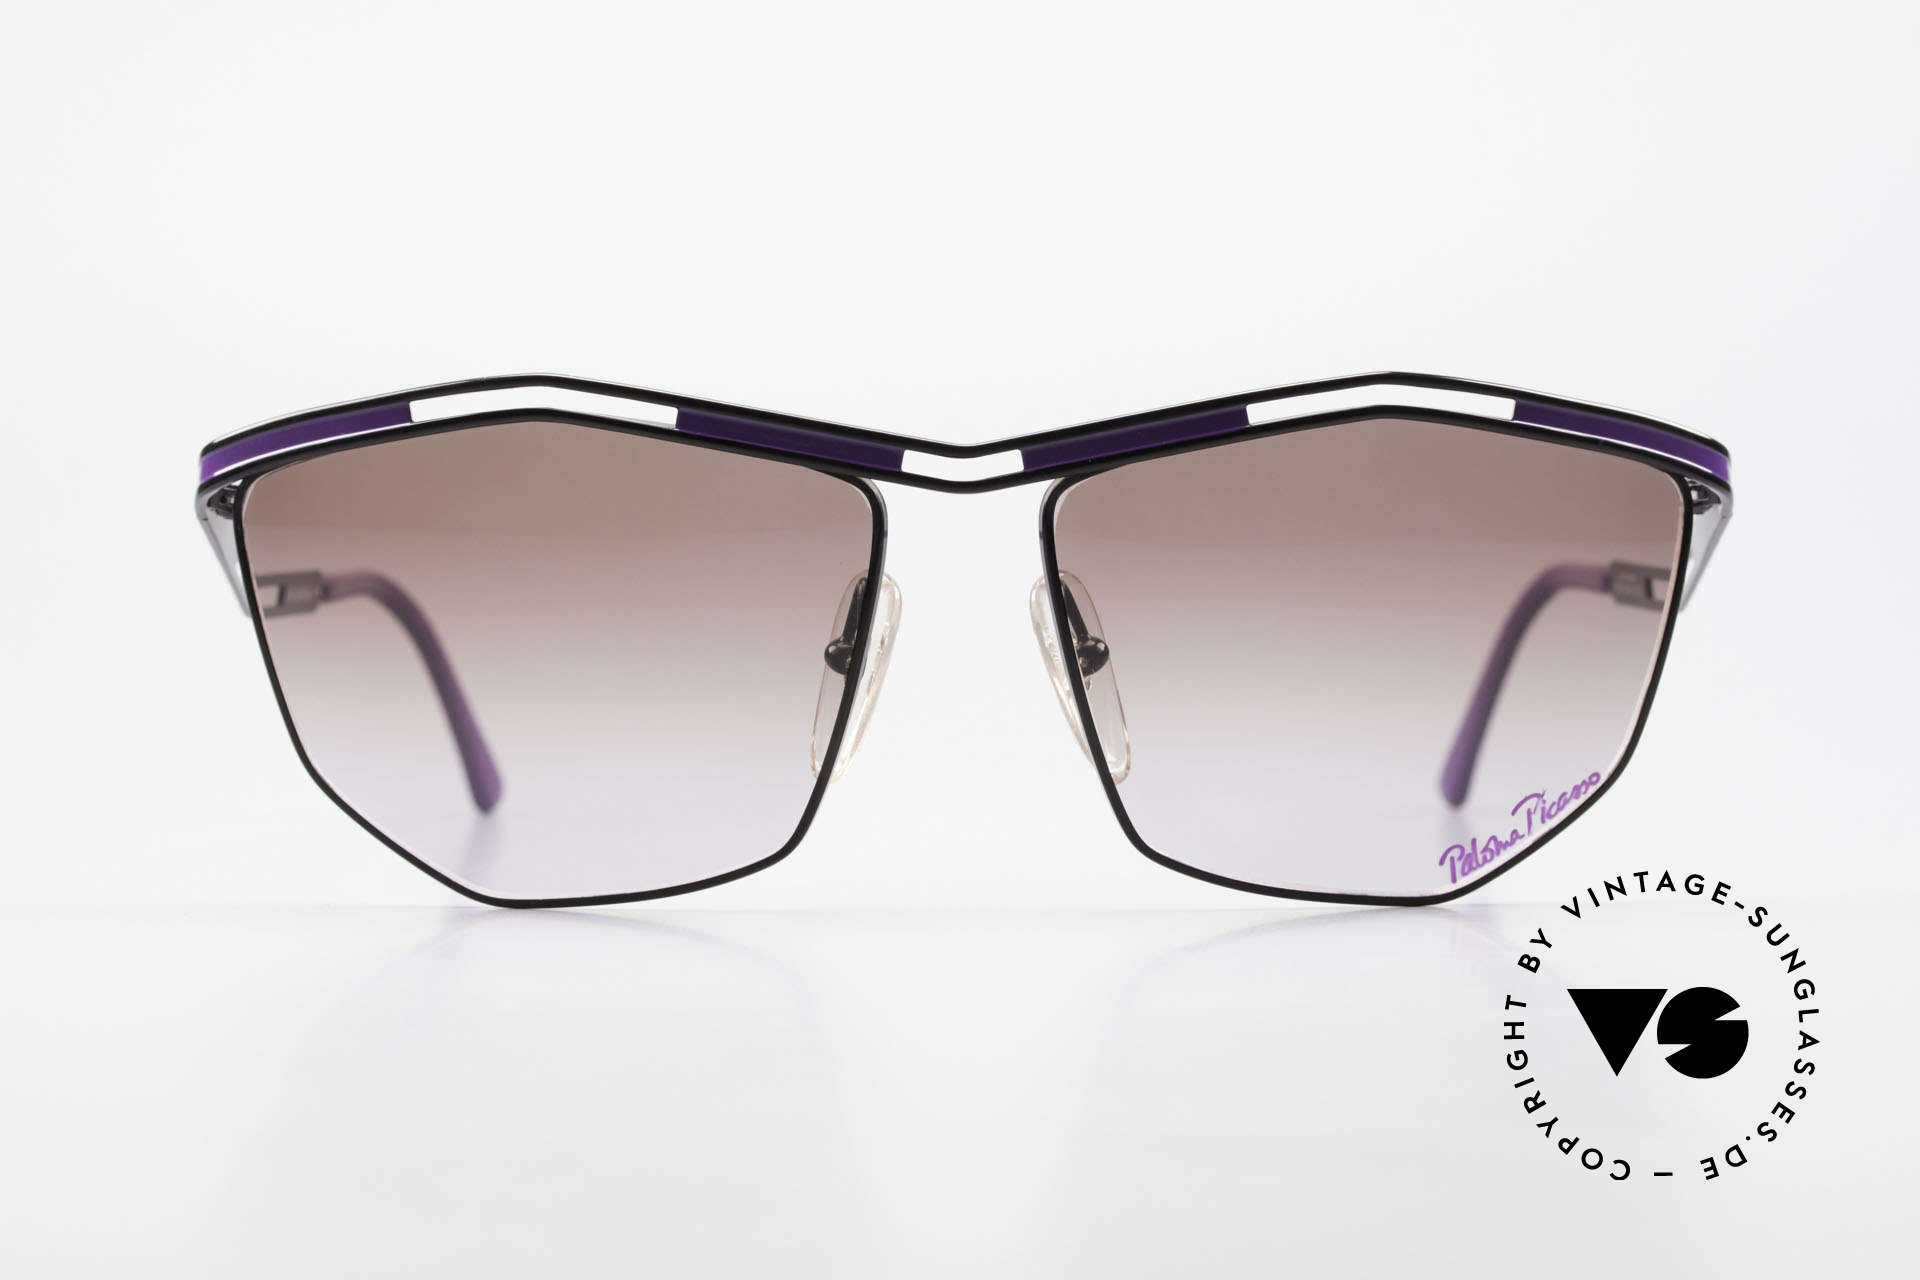 Paloma Picasso 1478 Rare 1990's Ladies Sunglasses, Paloma is the youngest daughter of Pablo Picasso, Made for Women